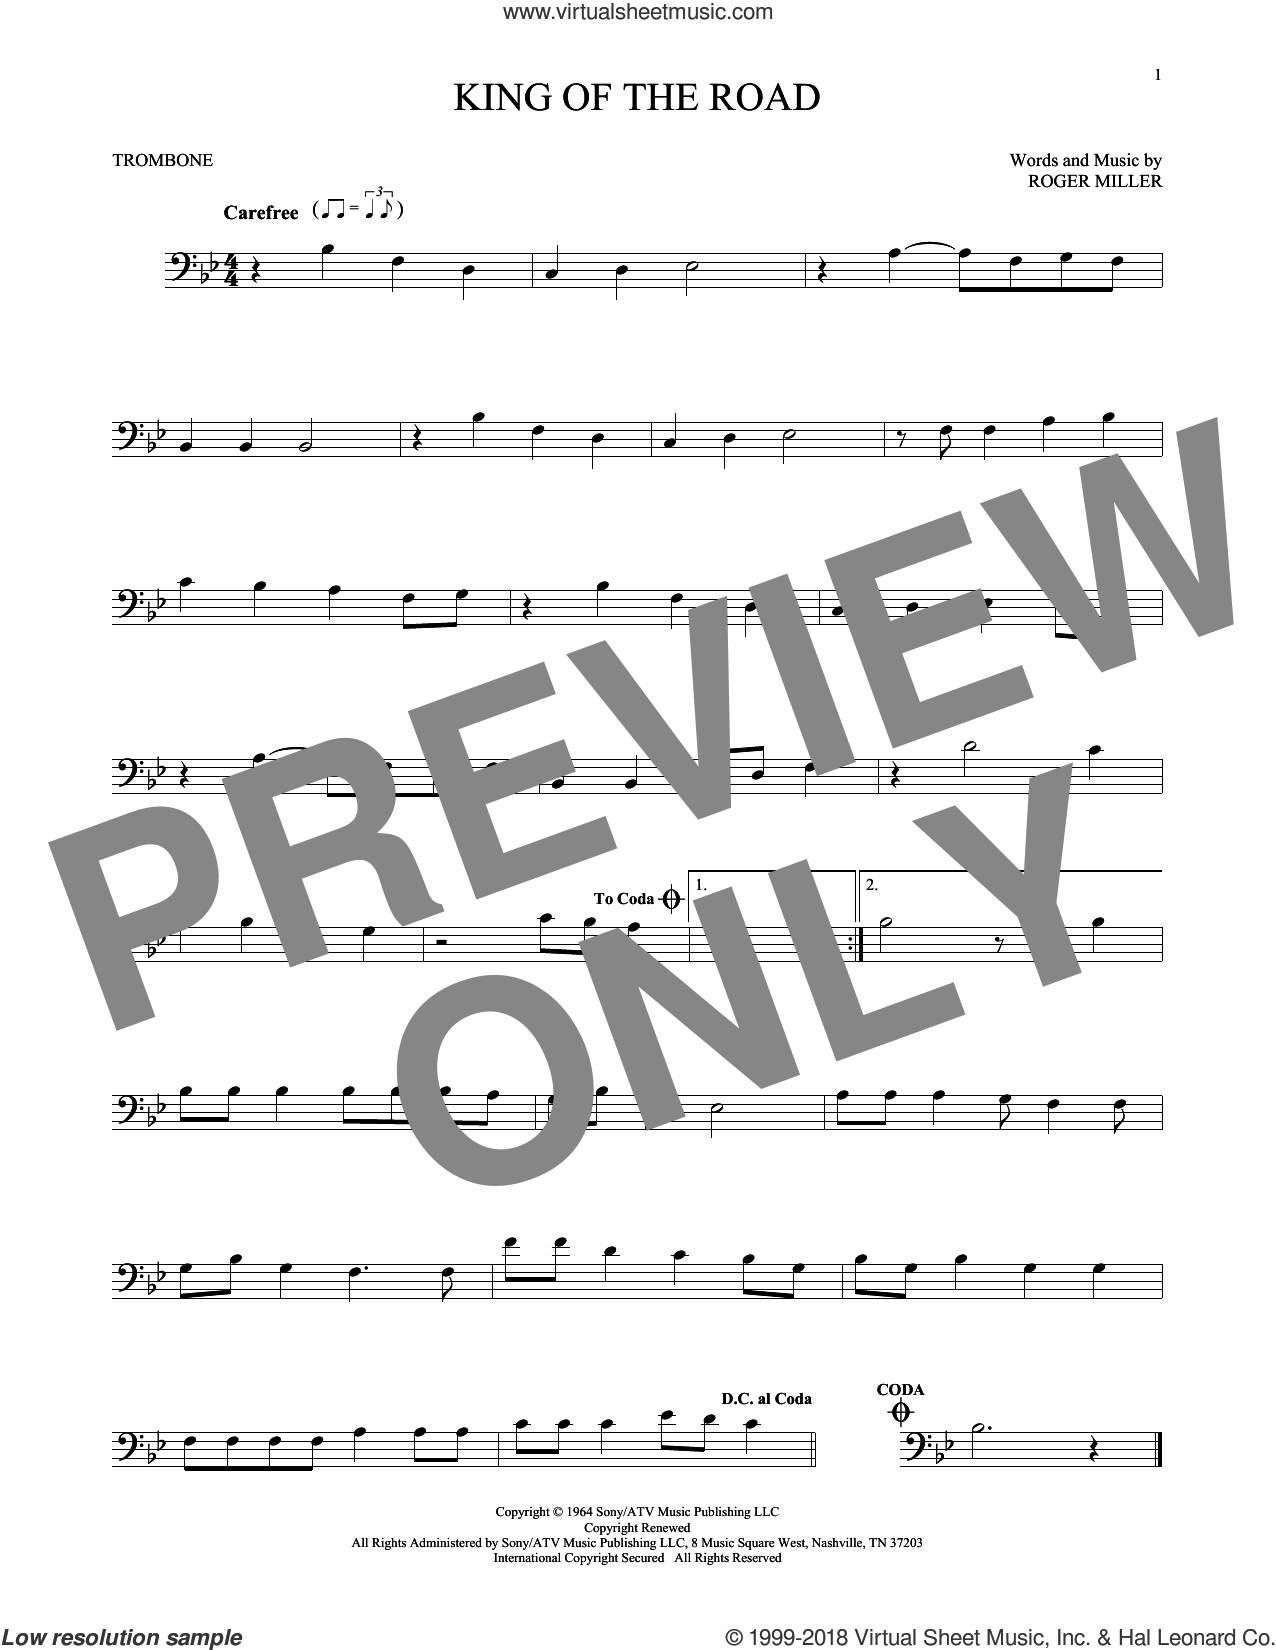 King Of The Road sheet music for trombone solo by Roger Miller and Randy Travis, intermediate skill level